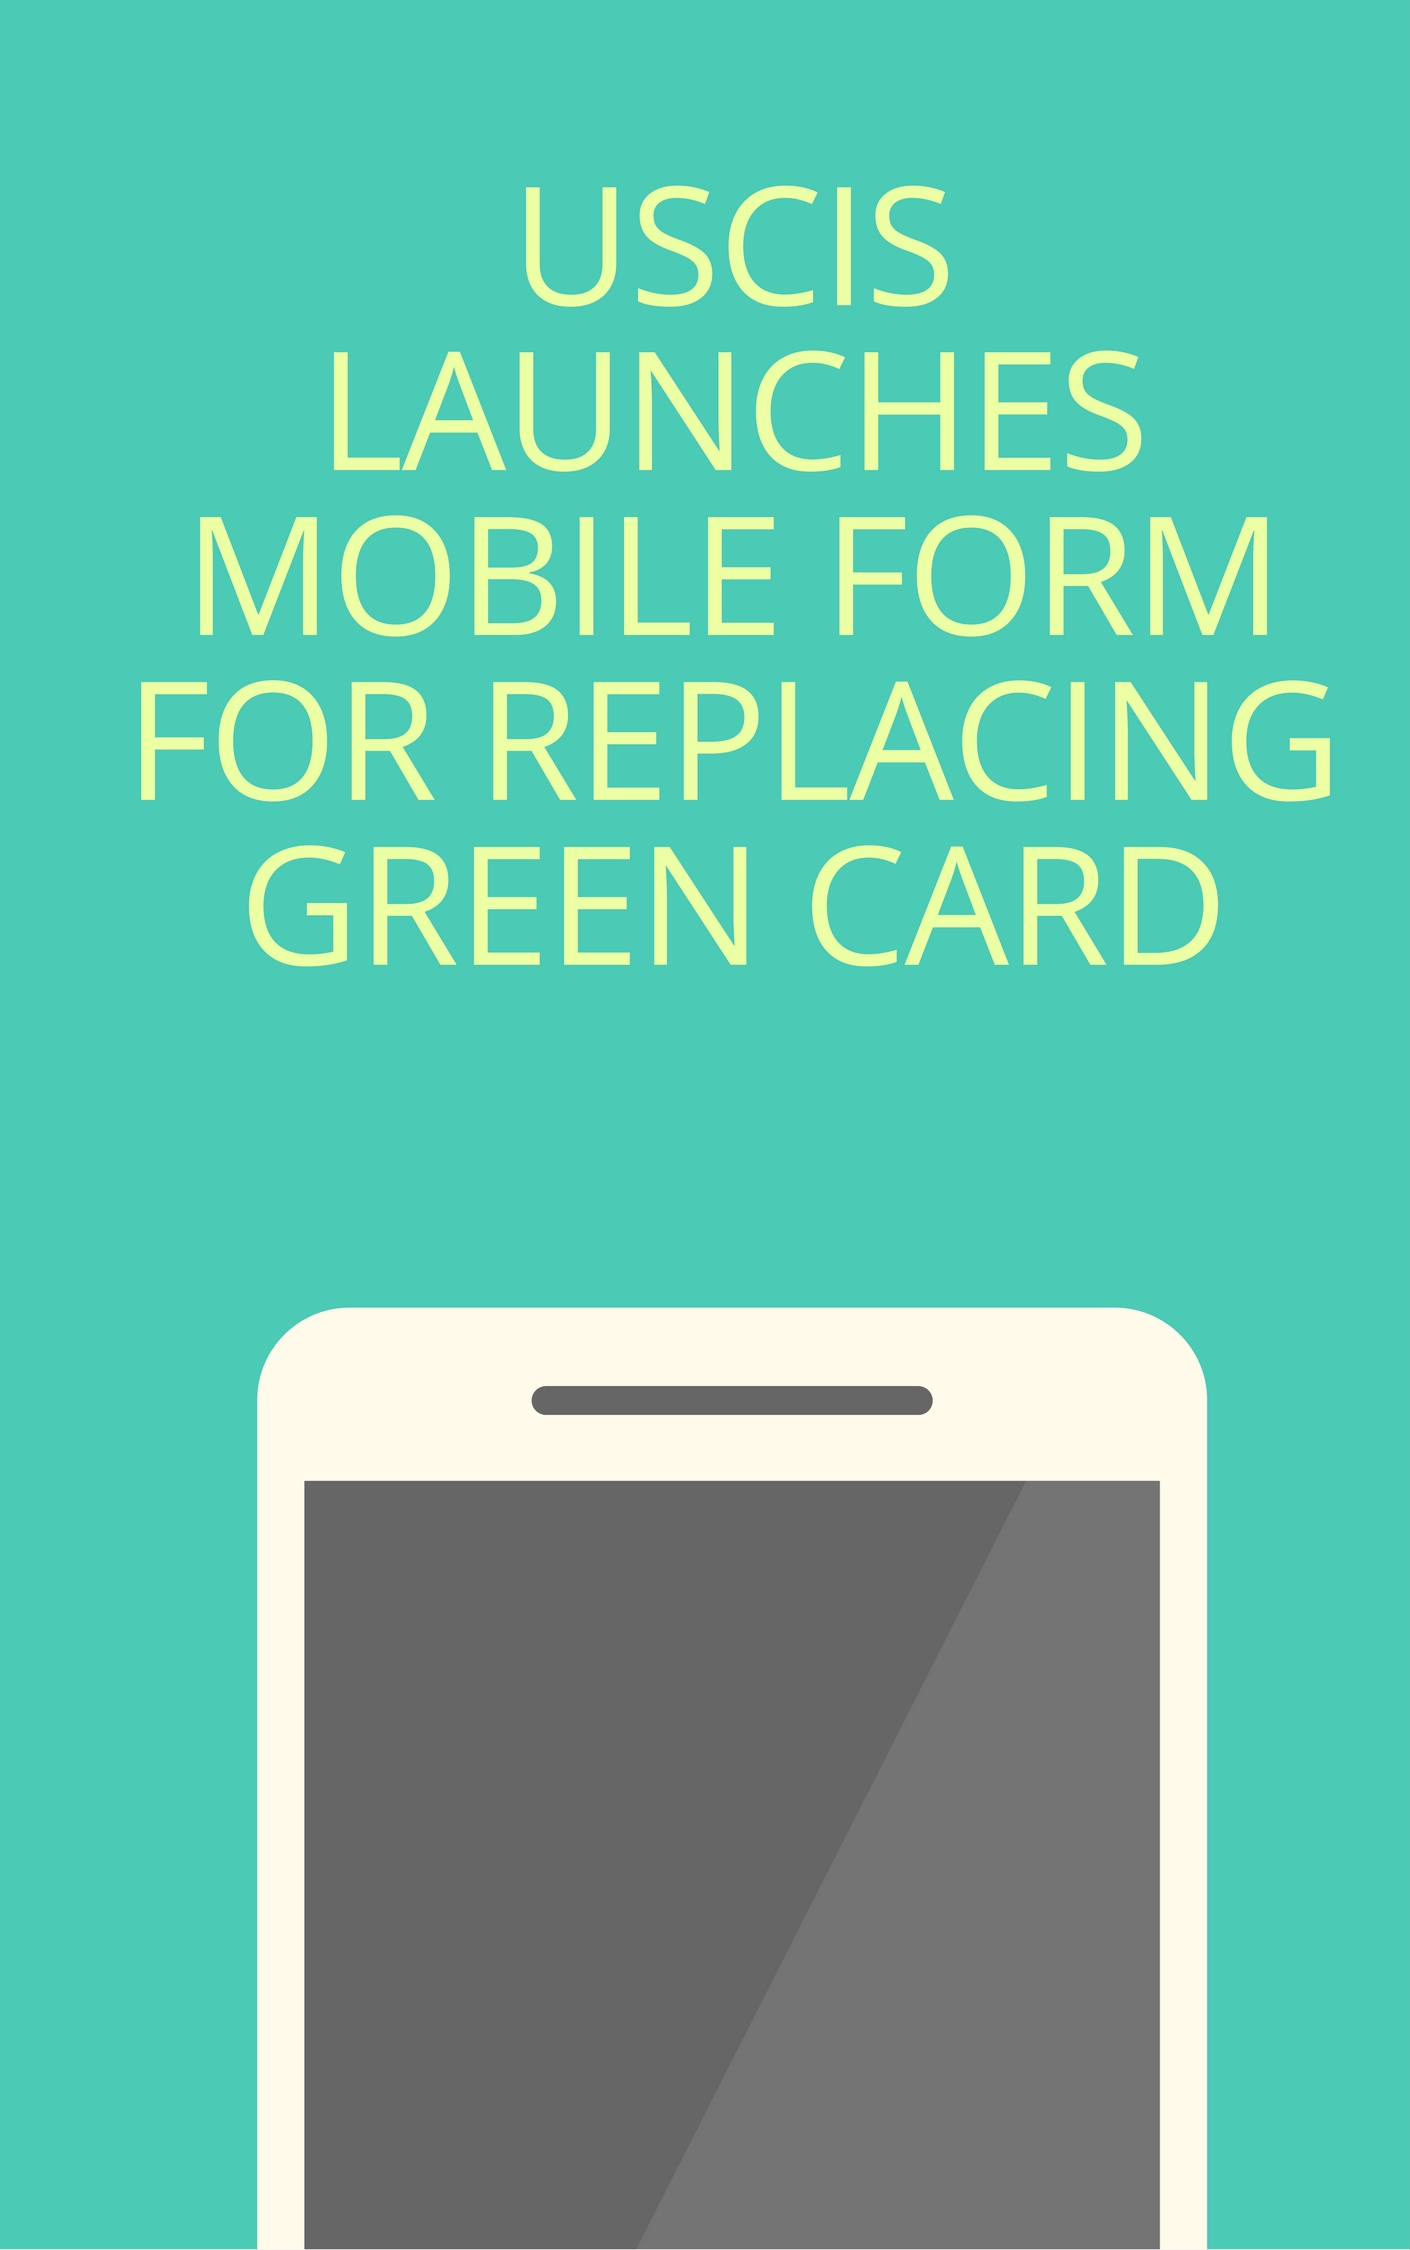 Uscis Launches Mobile Form For Replacing Green Card India Network